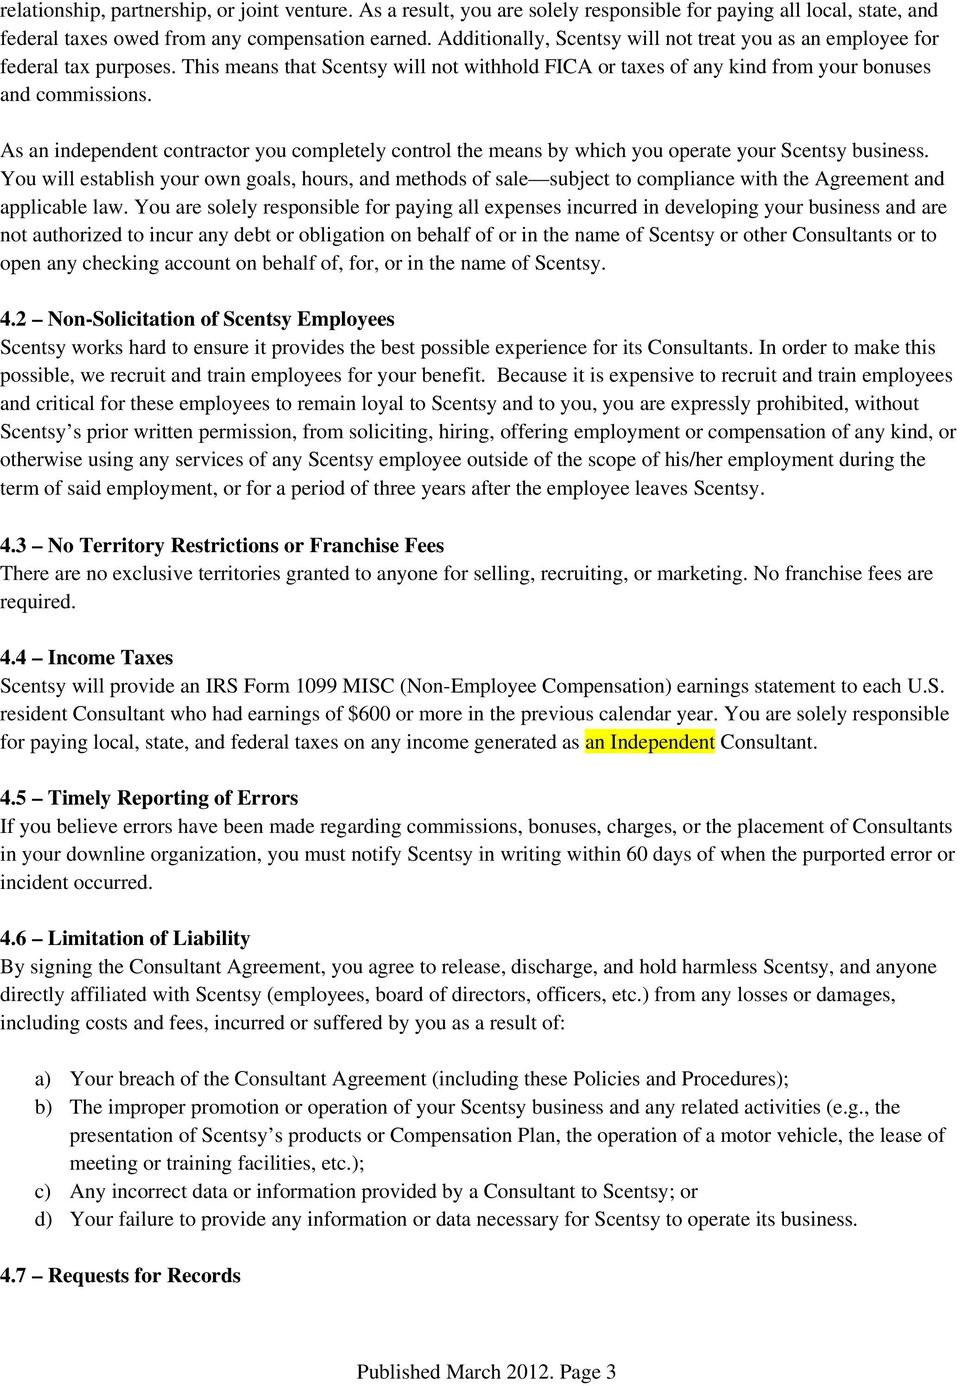 Scentsy Inc POLICIES and PROCEDURES United States PDF – Business Consulting Agreement